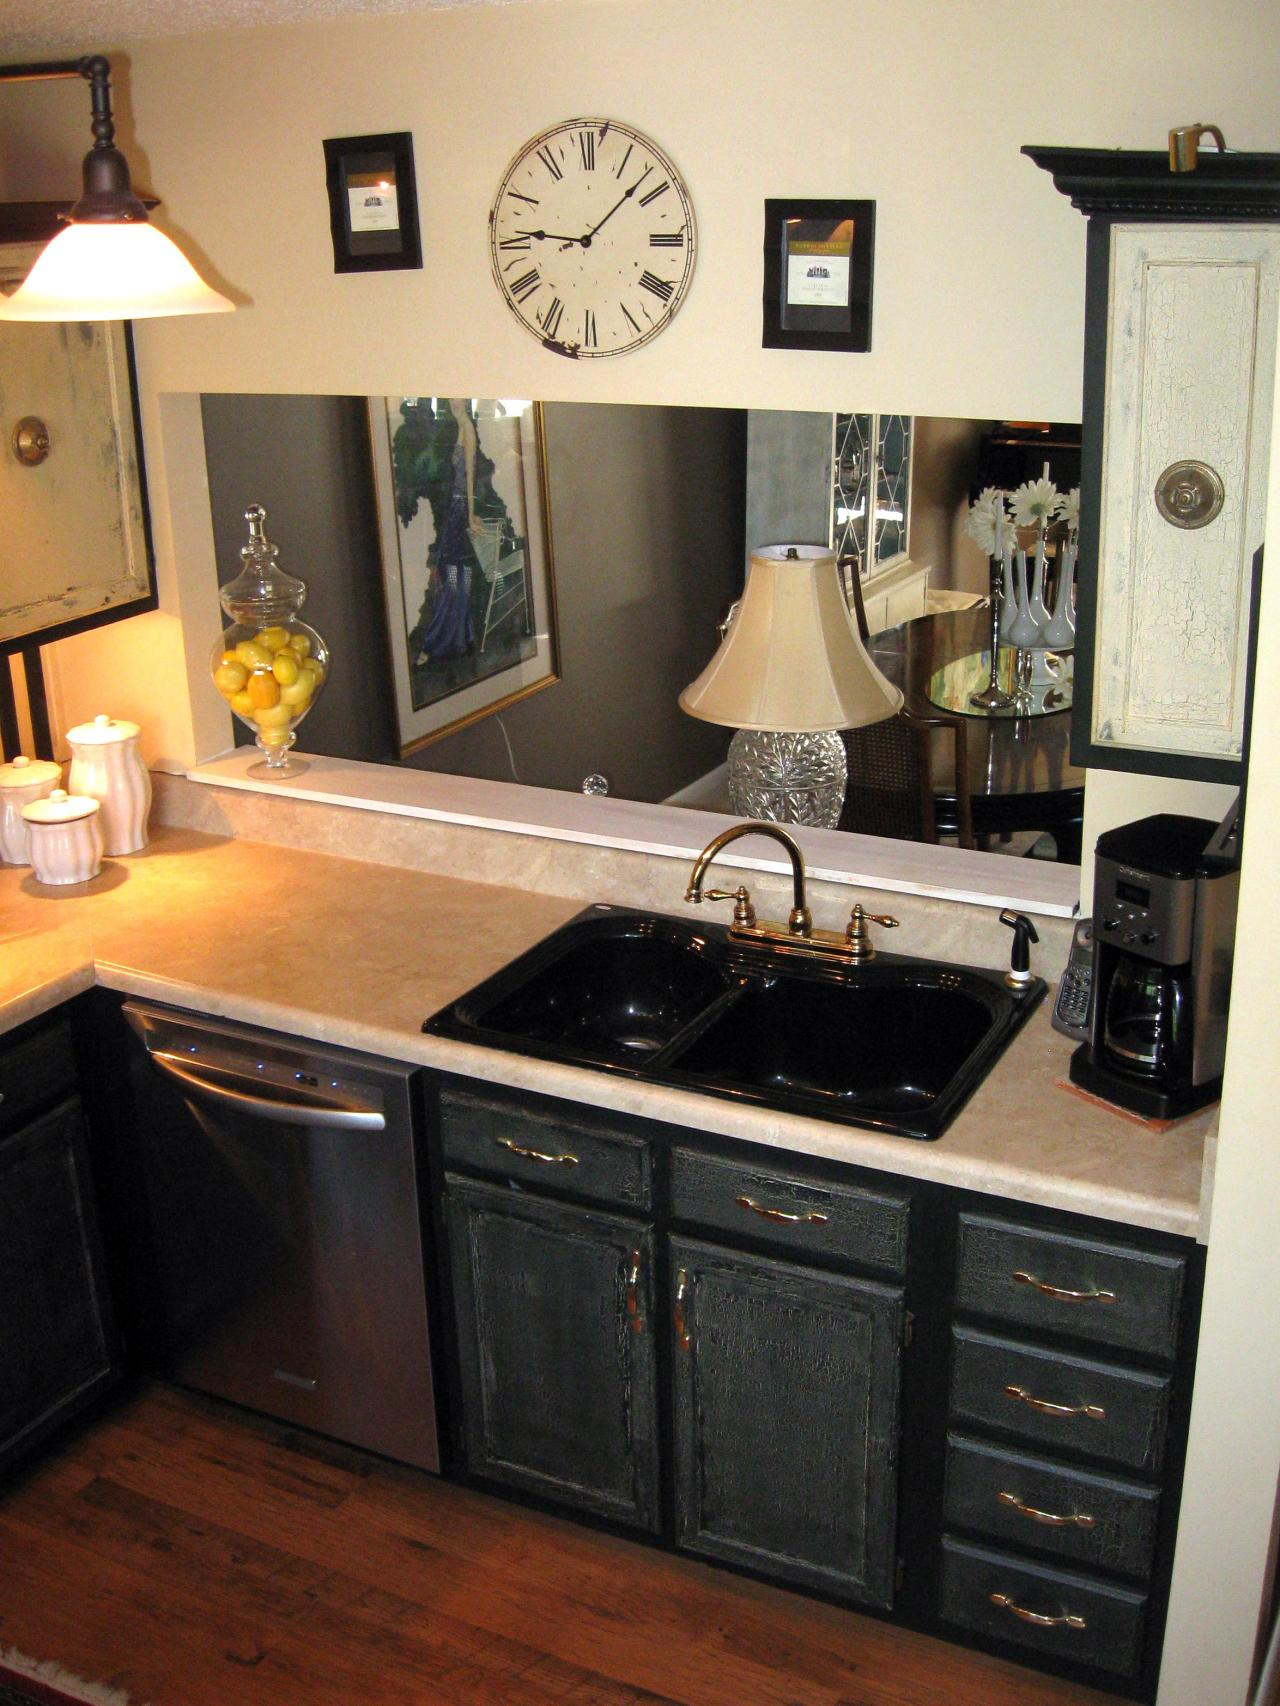 Photos hgtv - Black kitchen cabinets small kitchen ...